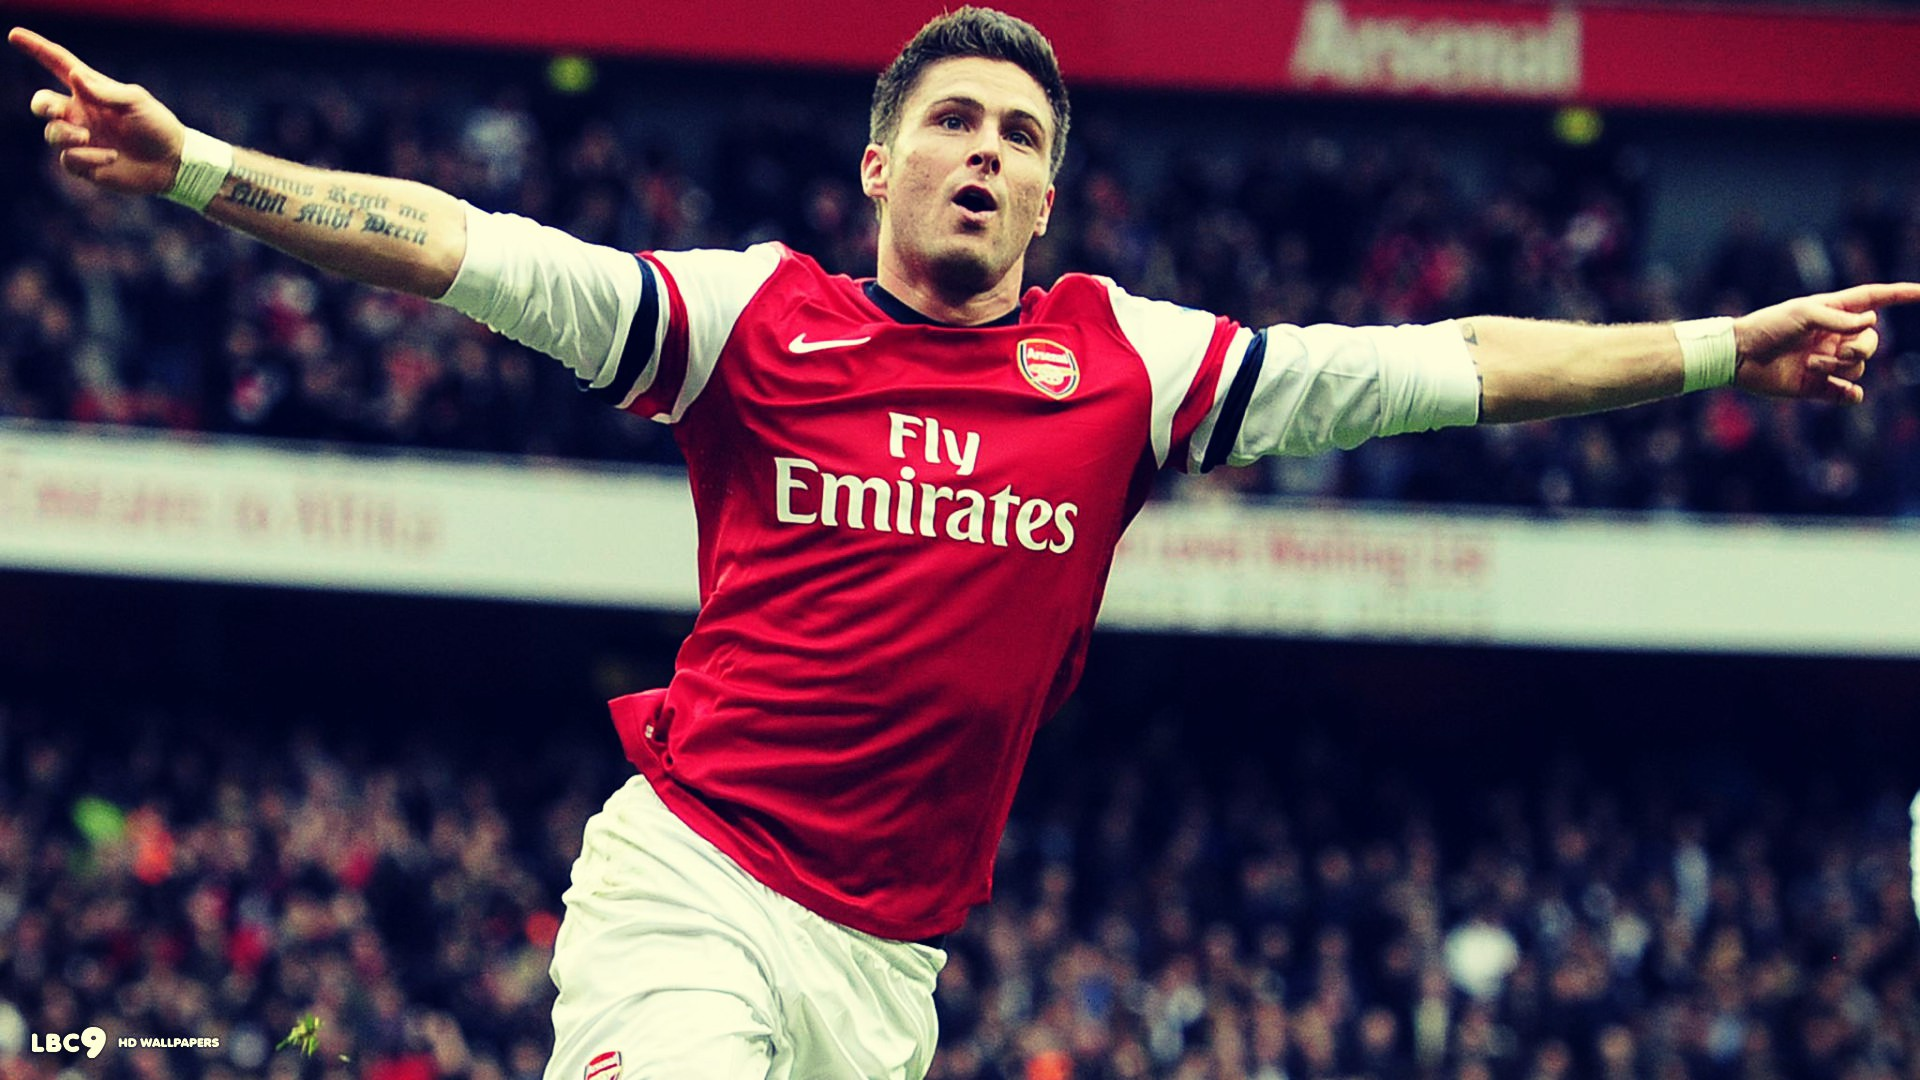 giroud arsenal wallpaper arsenal